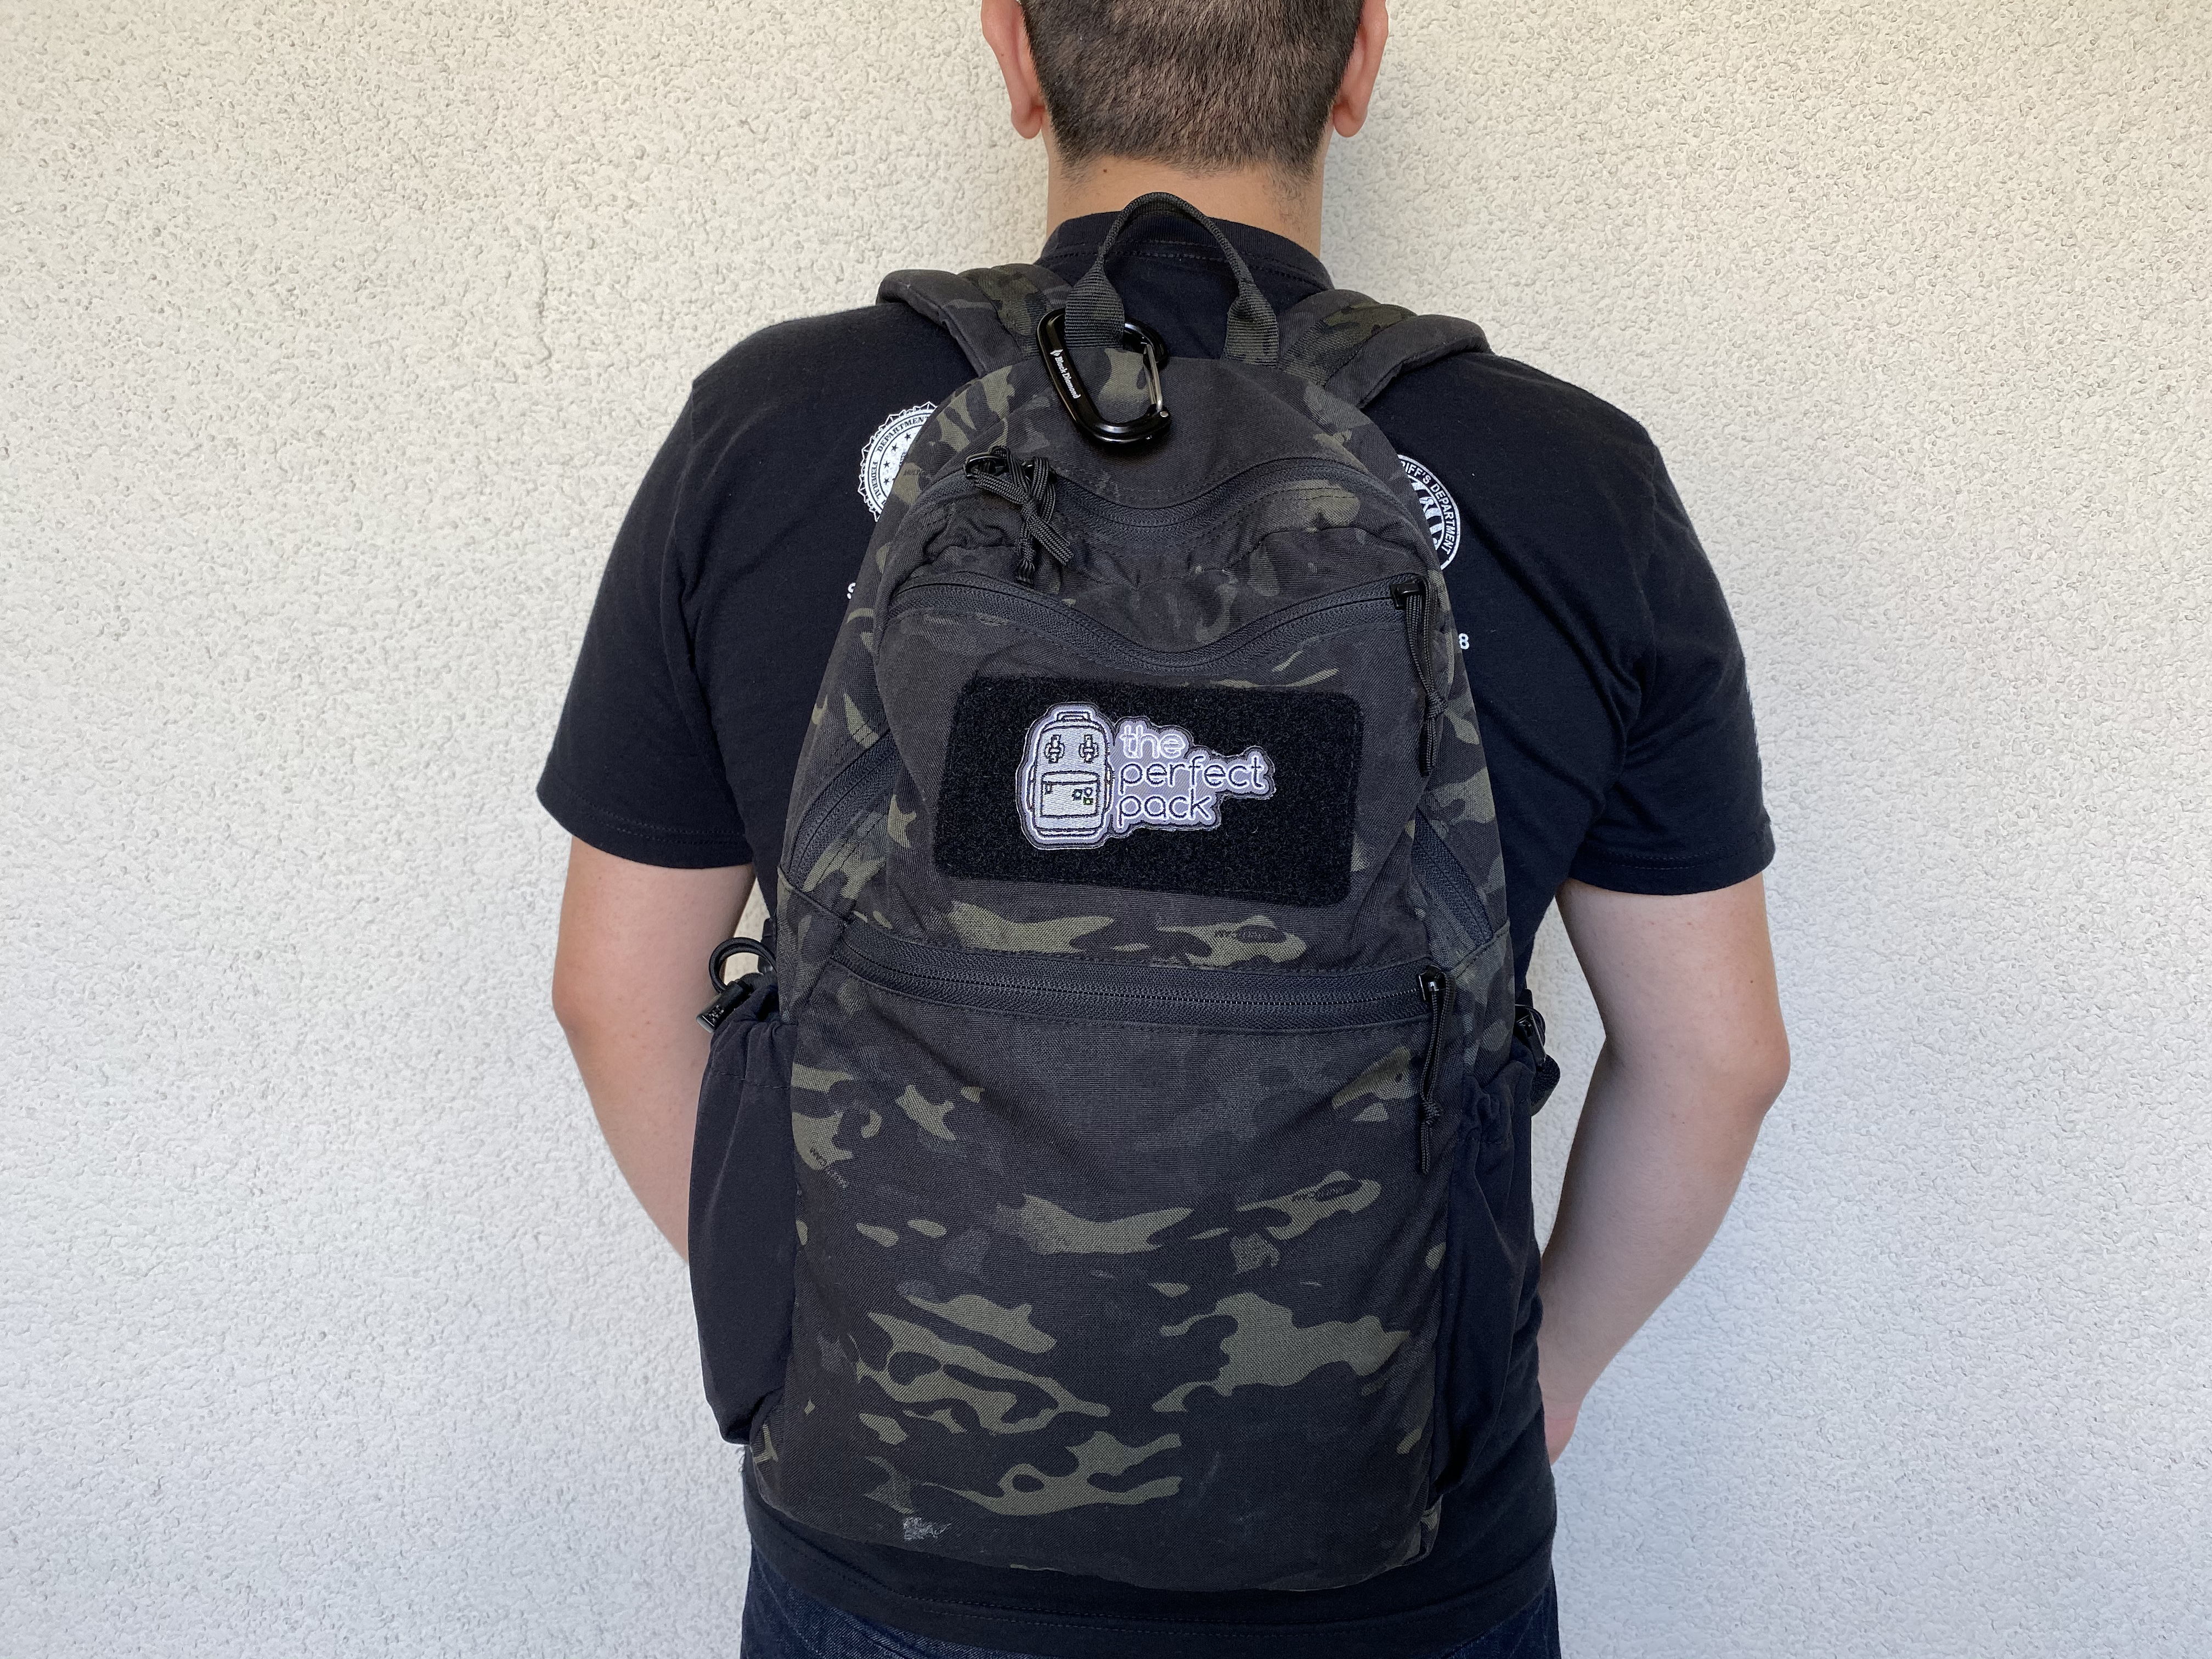 LBD 8005A Day Pack Review wearing on back